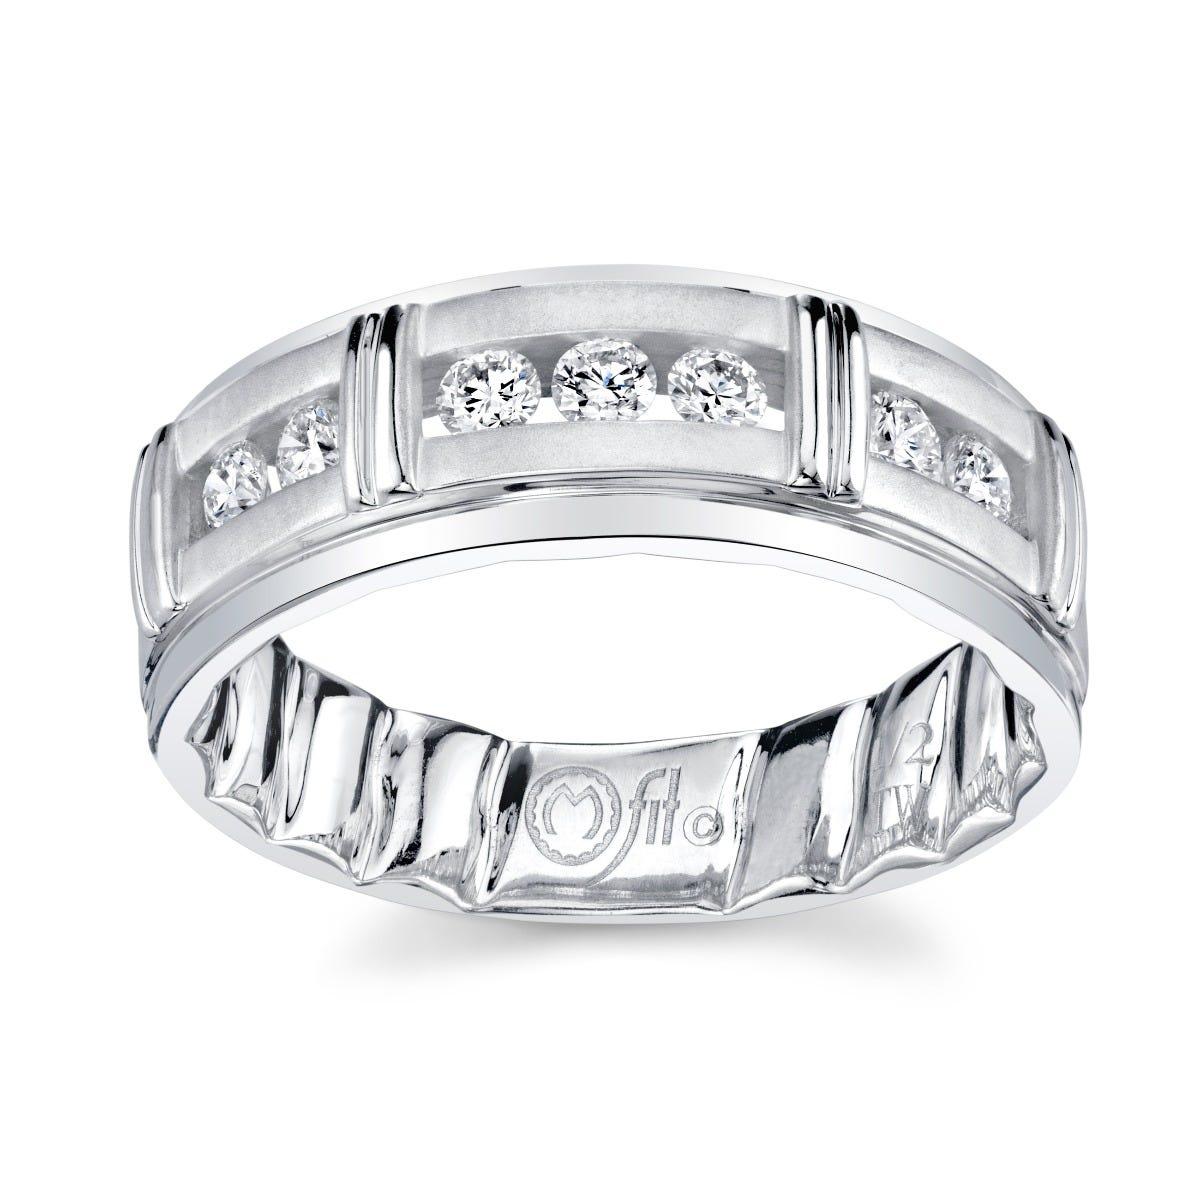 Men's MFIT Diamond Station Wedding Band ½ctw. in 14k White Gold